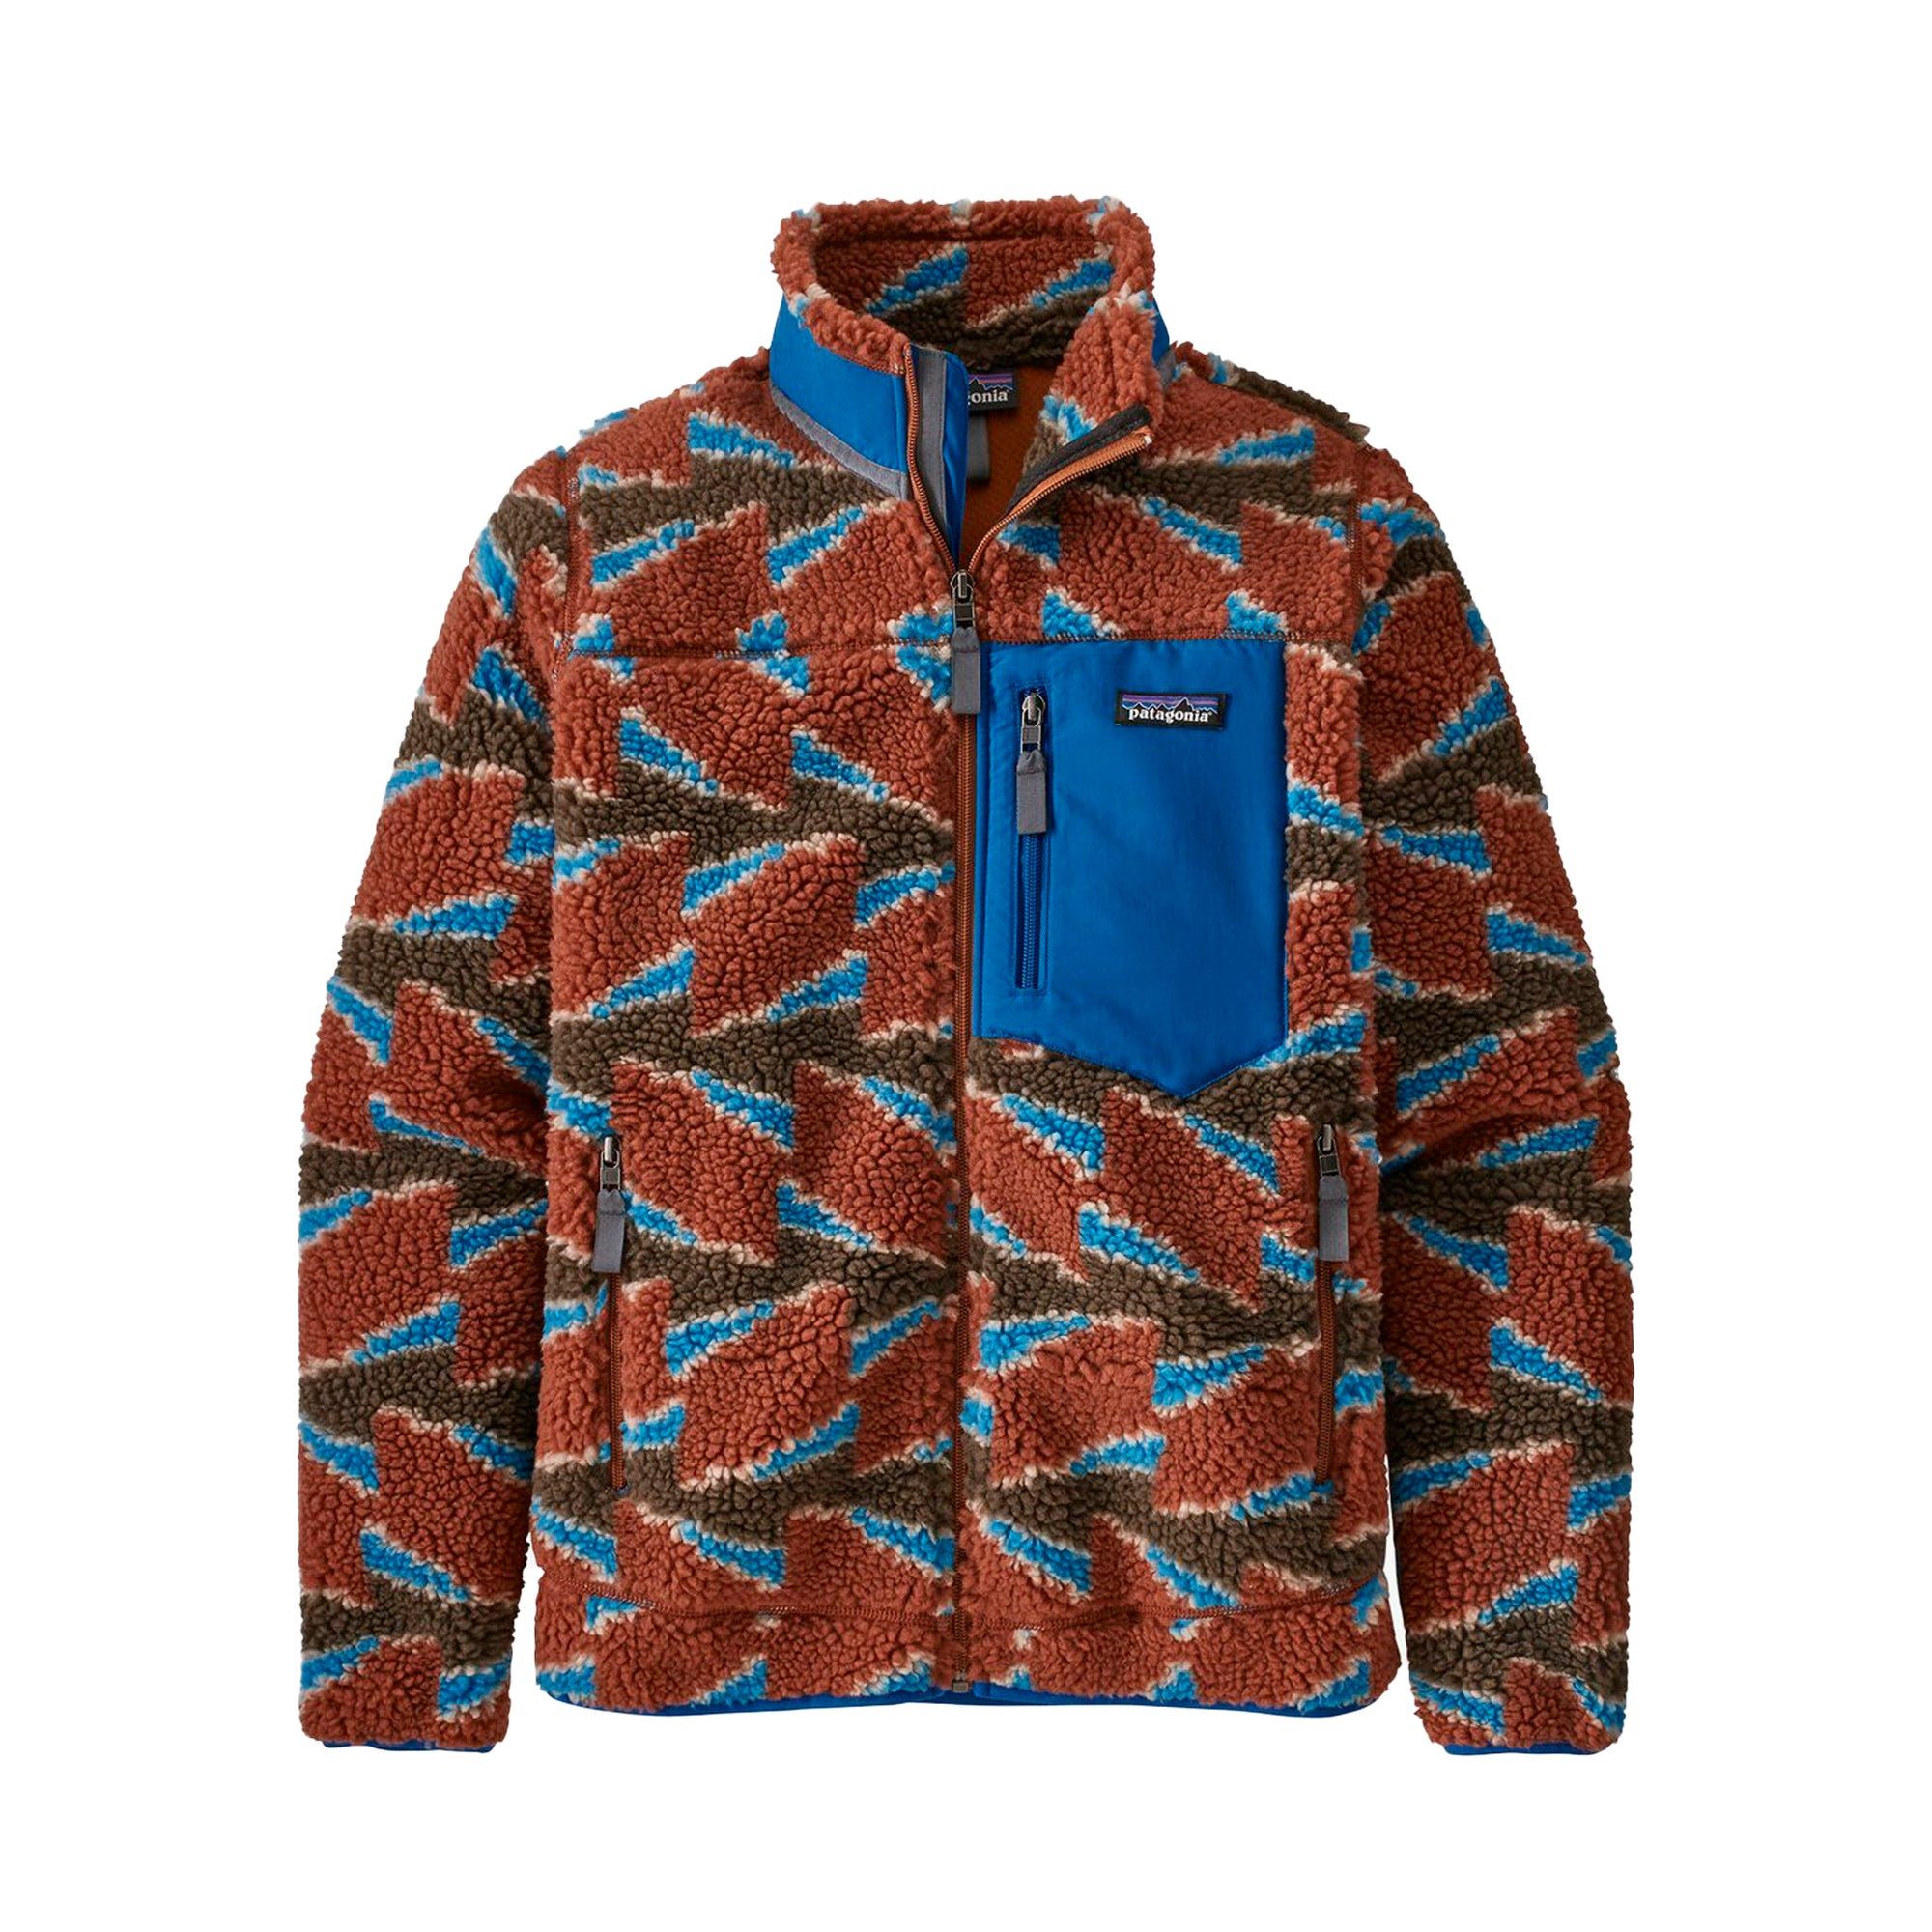 Patagonia Womens Retro-X Jacket: Take Root: Burnished Red - The Union Project